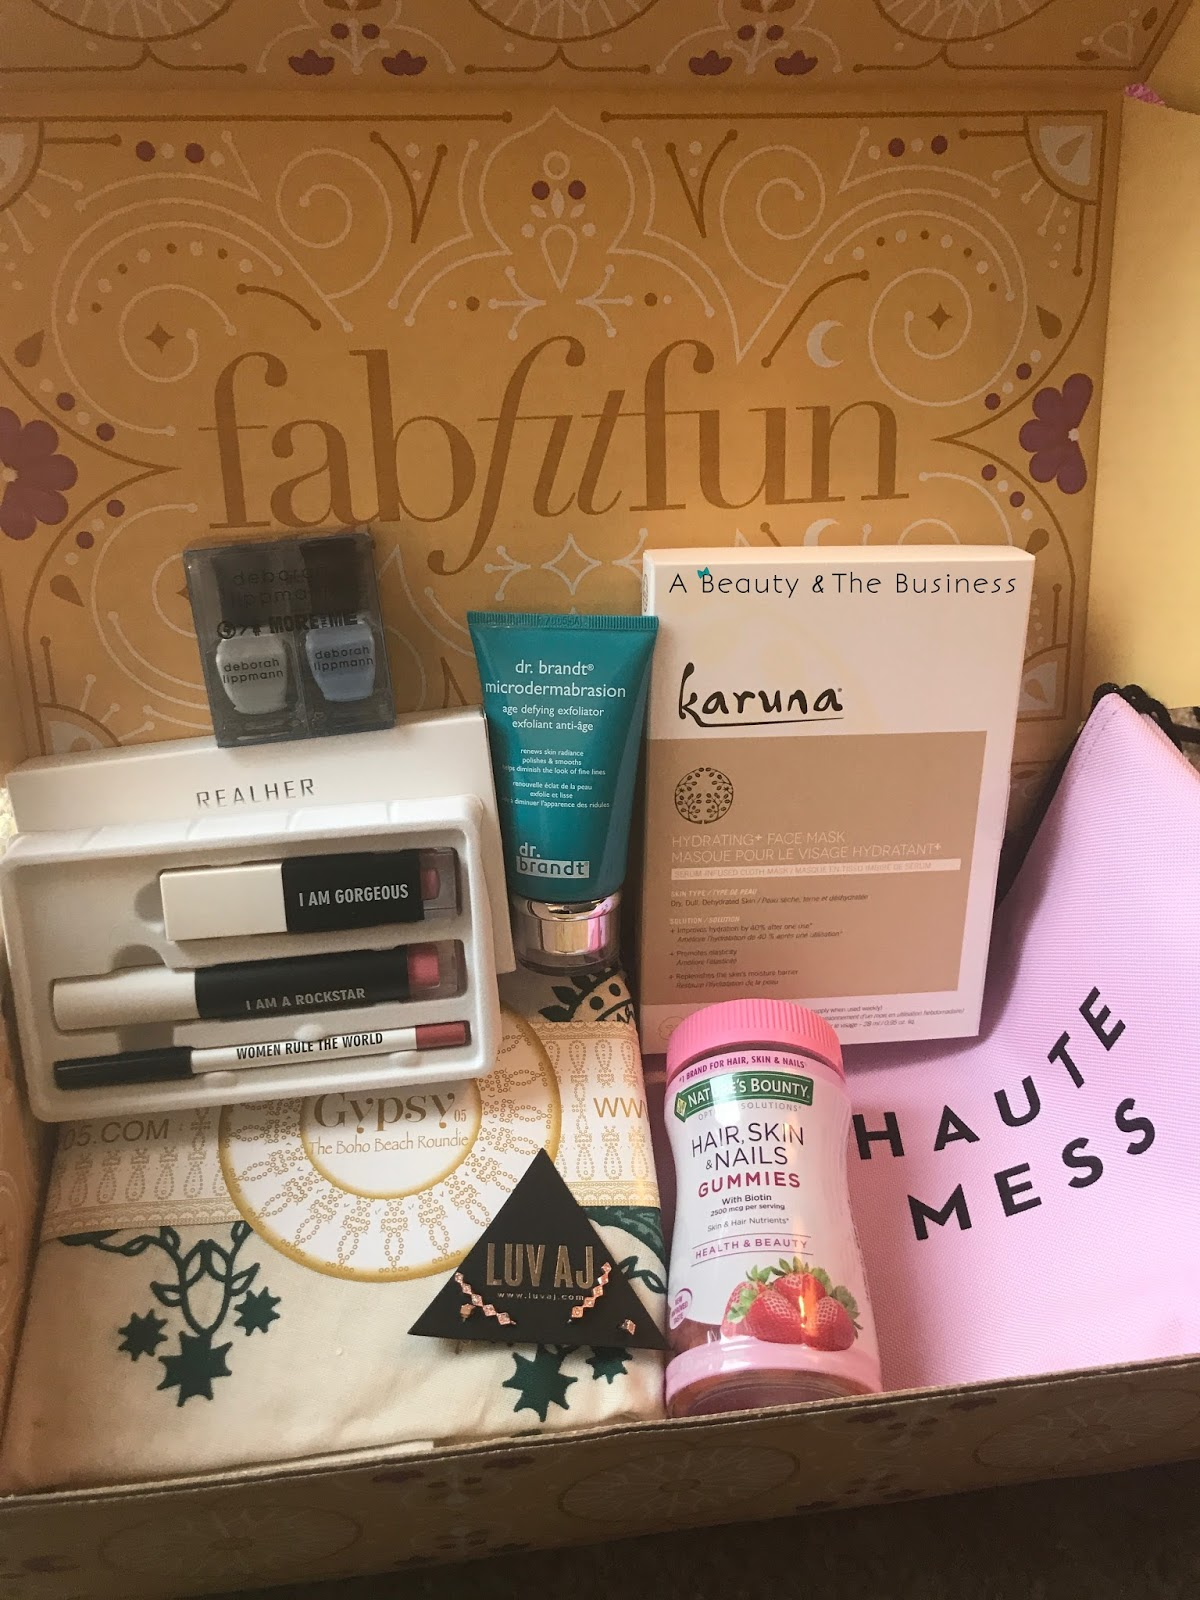 a beauty and the business, fabitfun box, spring fabfitfun box, unboxing, gypsy roundie, Briogeo Rosarco, real her, karuna hydrating mask, subscription box, luv aj, luv aj ear crawlers, siamese kitten, tortie siamese kitten, torties seal point siamese kitten, dr brandt microdermabrasion age defying exfoliator, leave in conditioning spray, milly zip pouch, debroah lippman, realher costmetics, realher lip kit, karuna hydrating face mask, skin care gummies biotin gummies, vitamin gummies